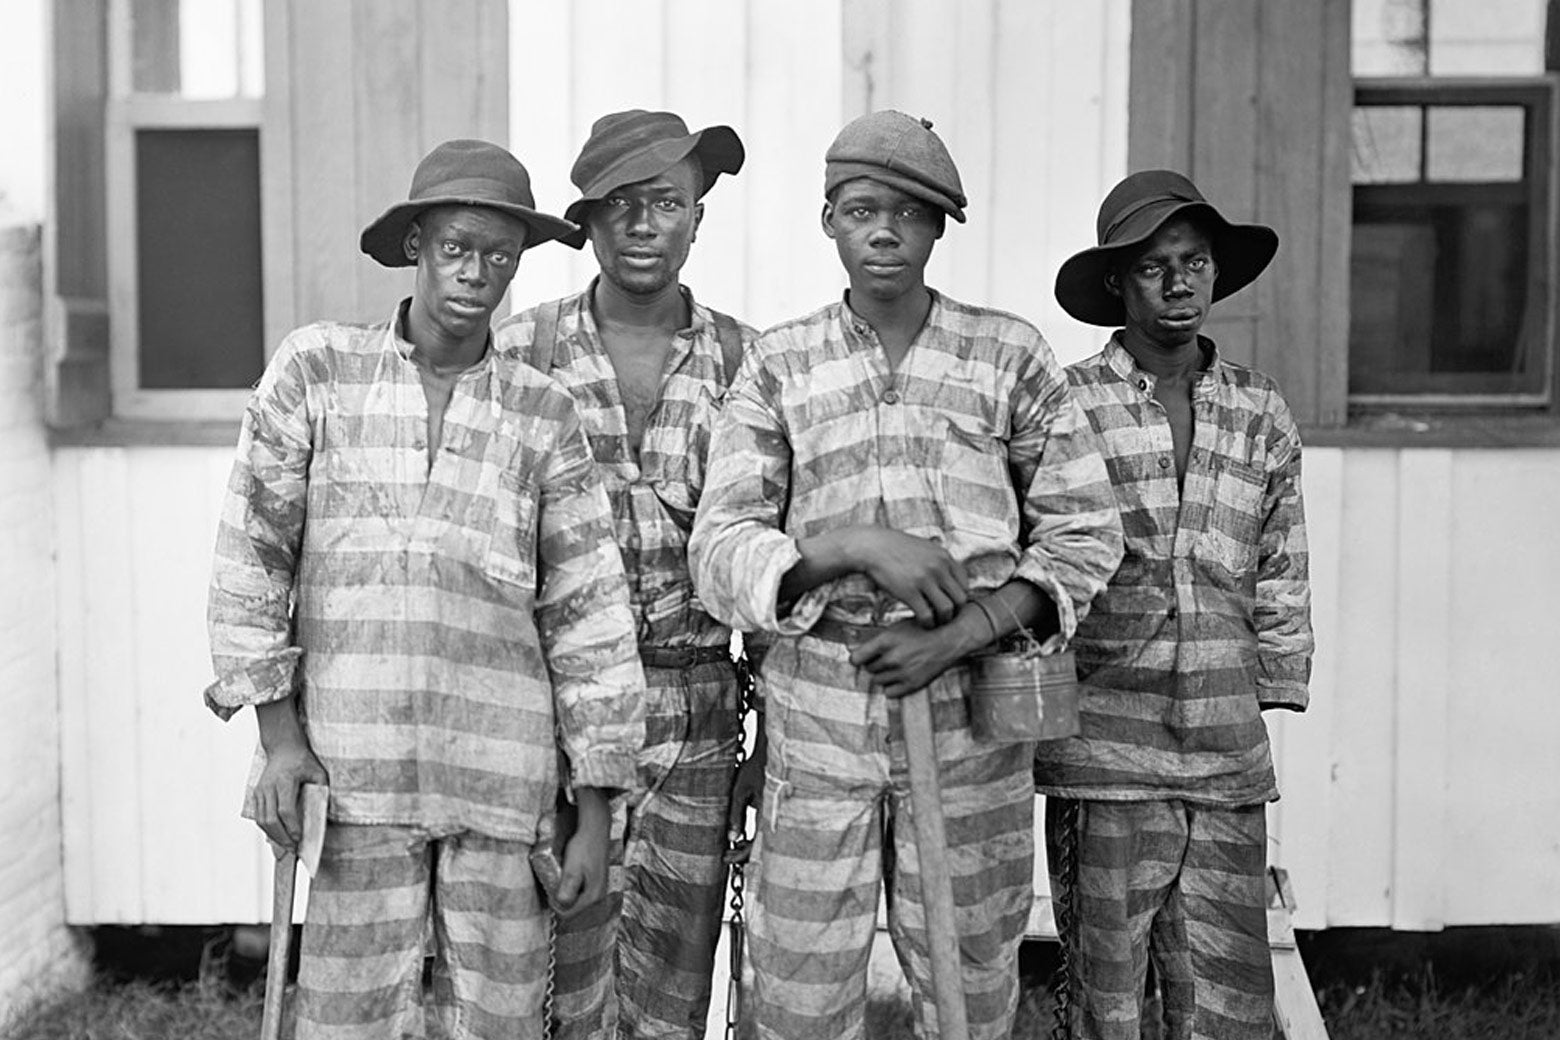 A Southern chain gang between from the 1900s